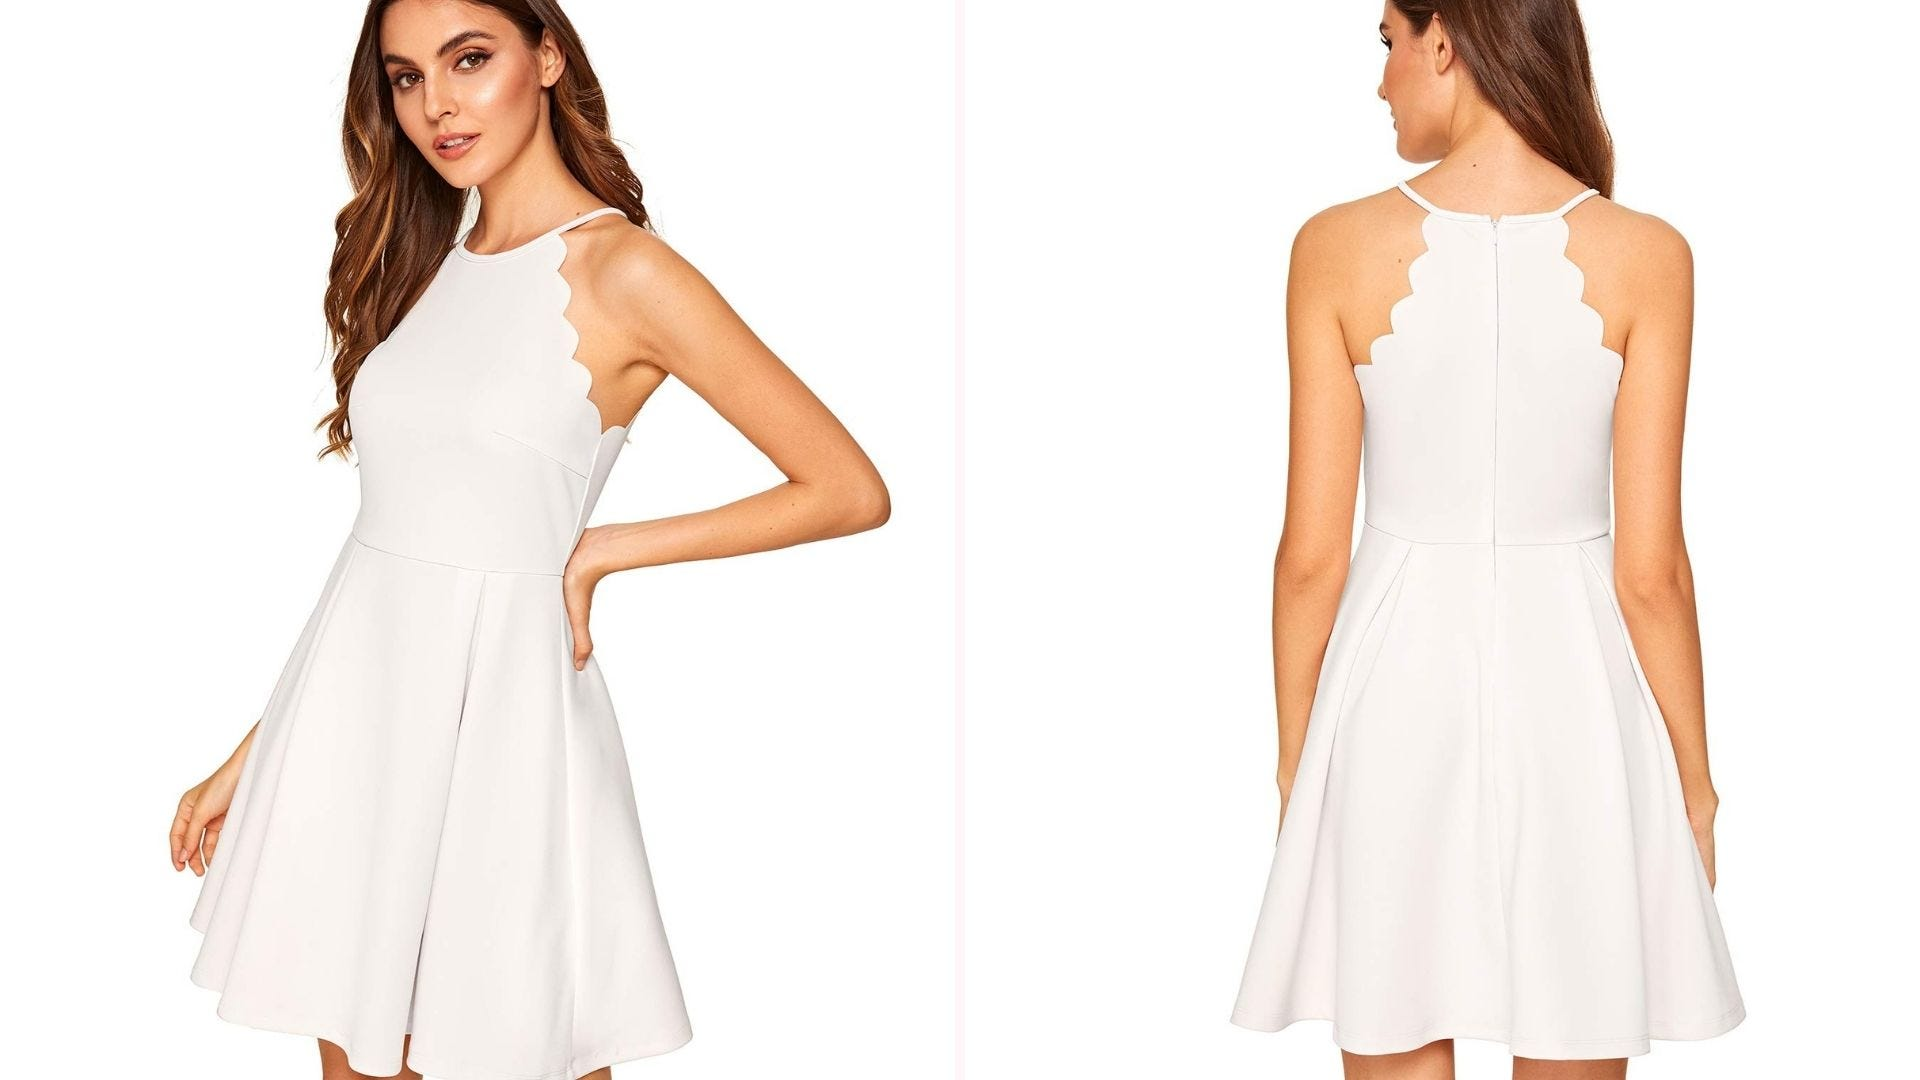 Front and back view of a brunette woman wearing a sleeveless white dress